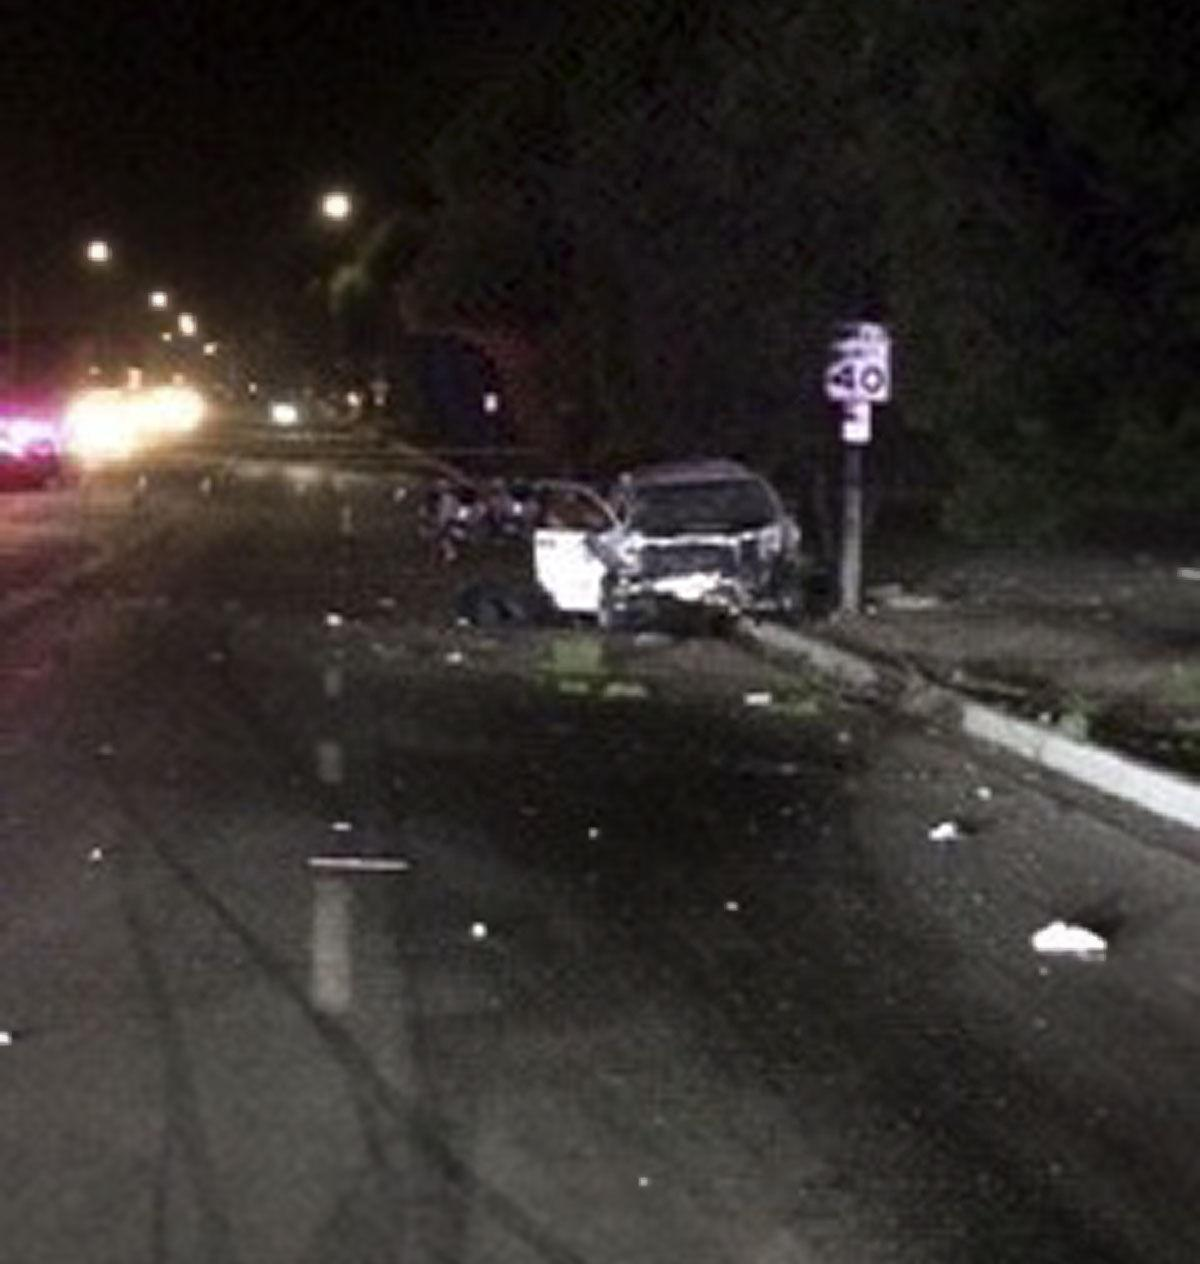 Three killed, 2 injured in crash Friday night at Stowell and Blosser